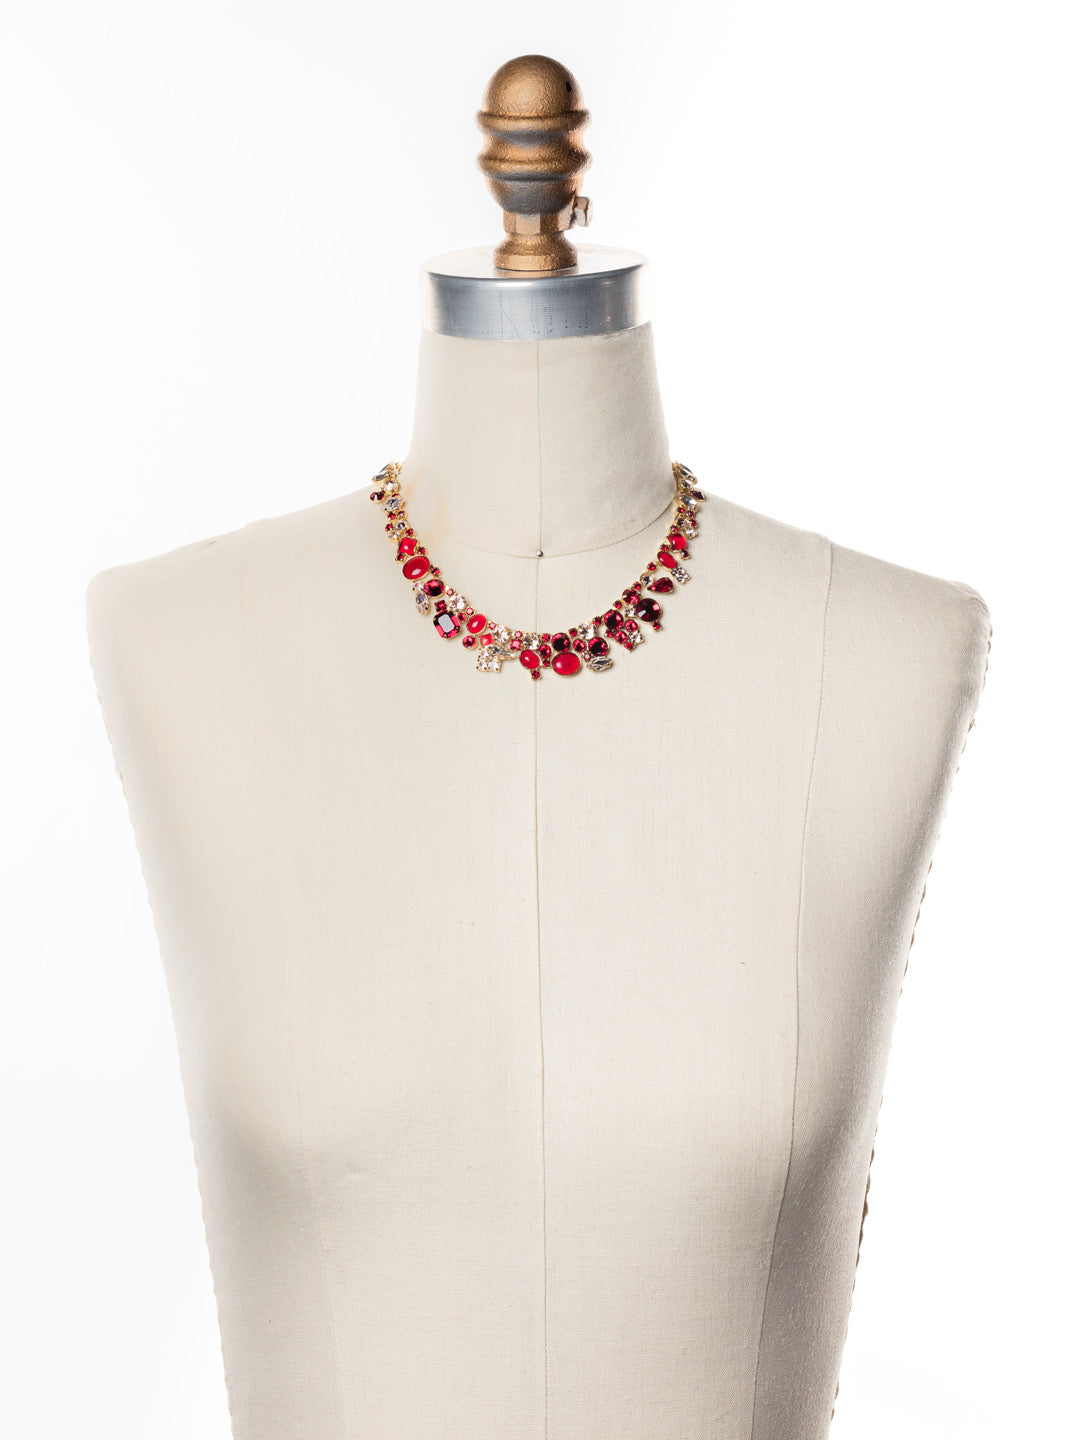 Colette Tennis Necklace - NAX8BGSRC